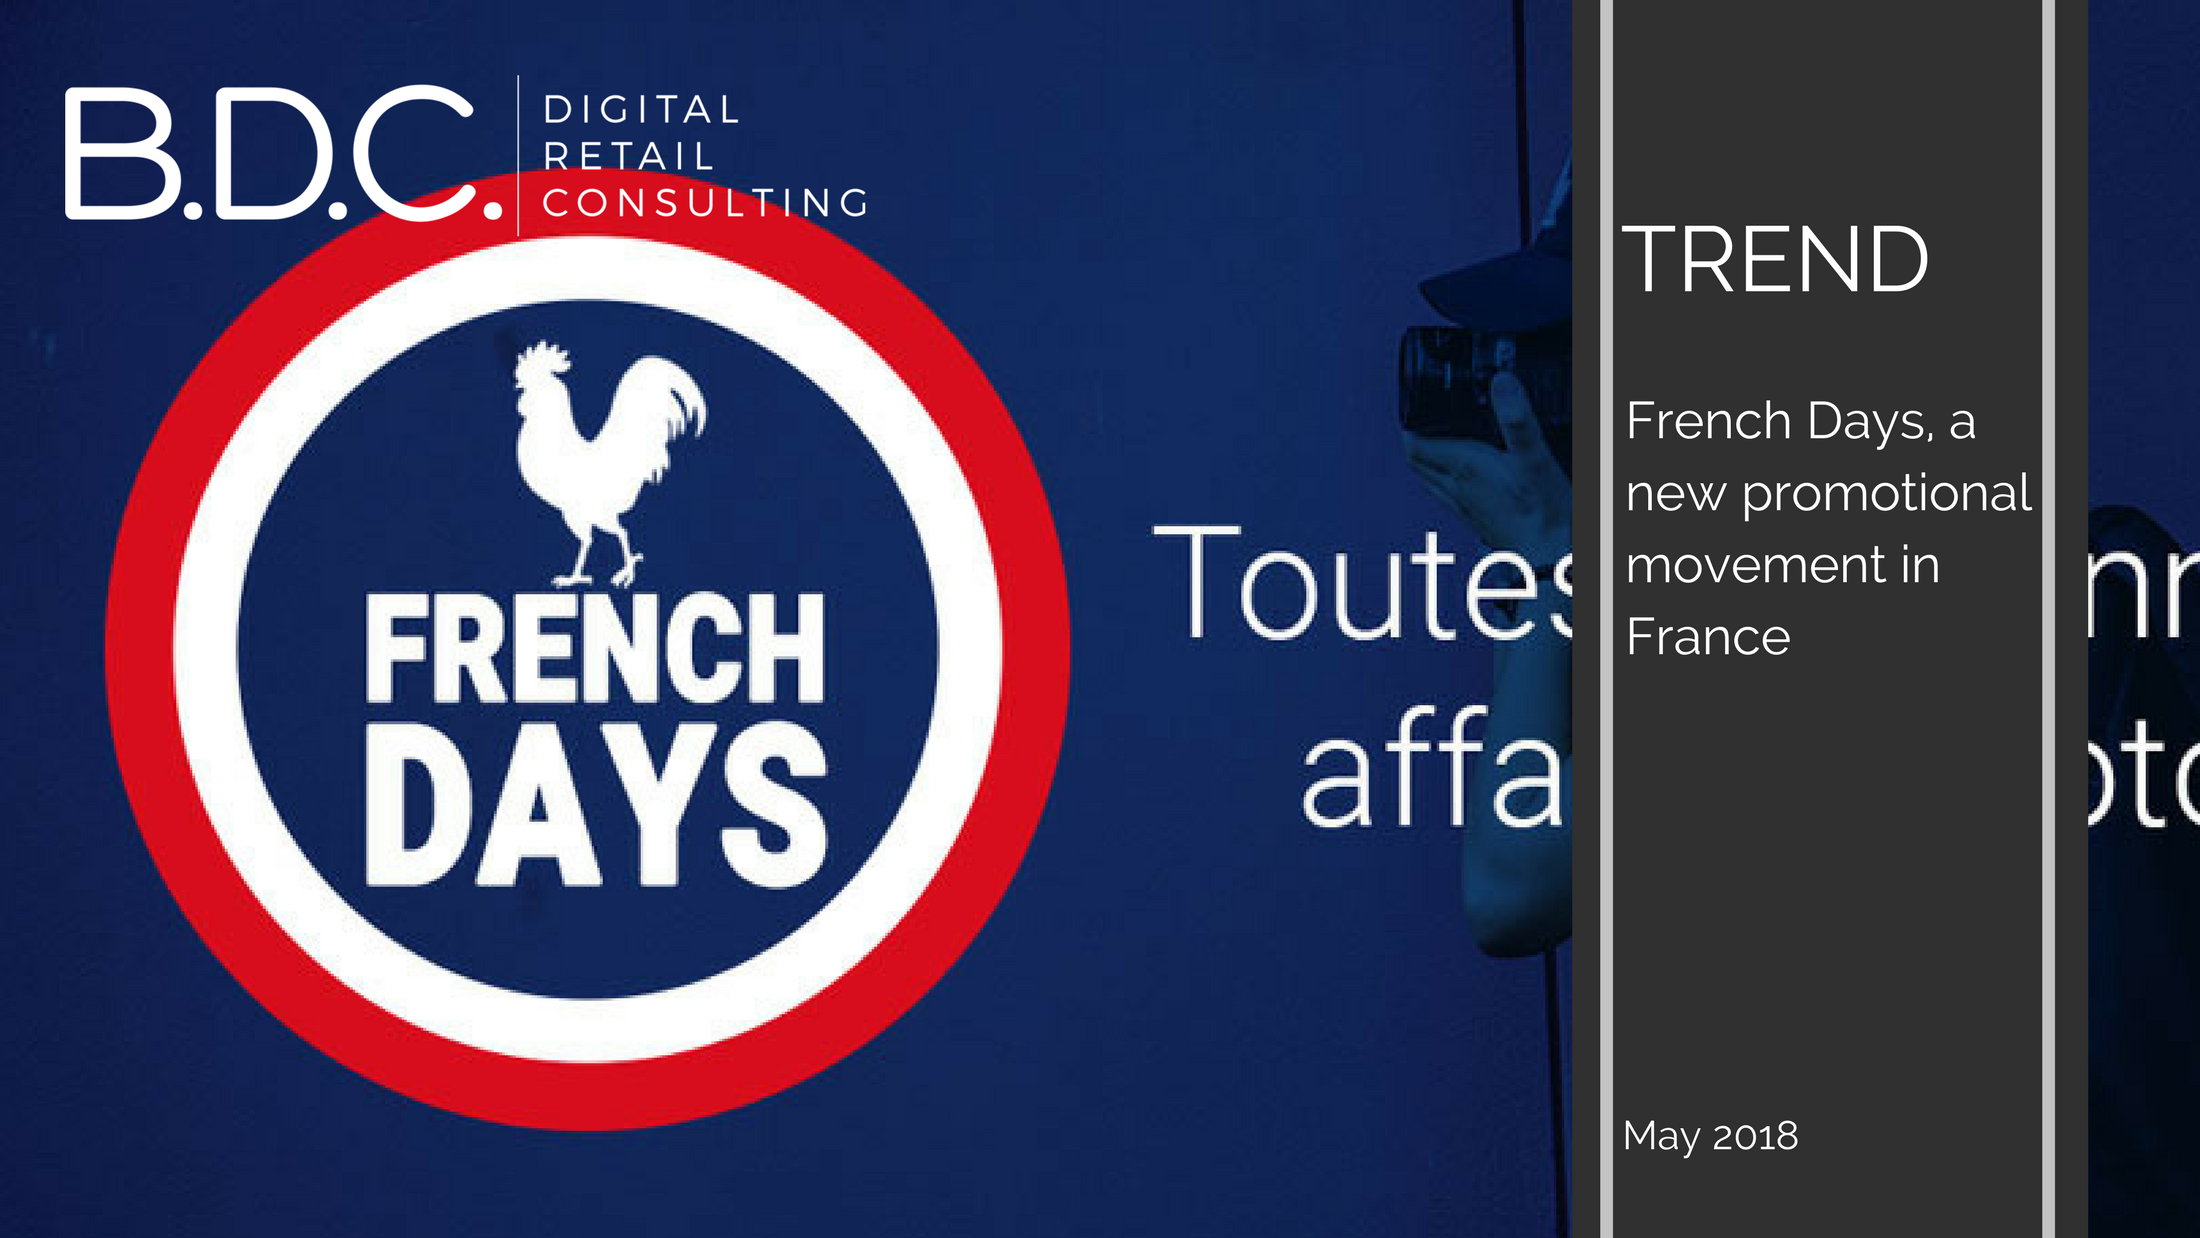 Trends News 36 - French Days, a new promotional movement in France